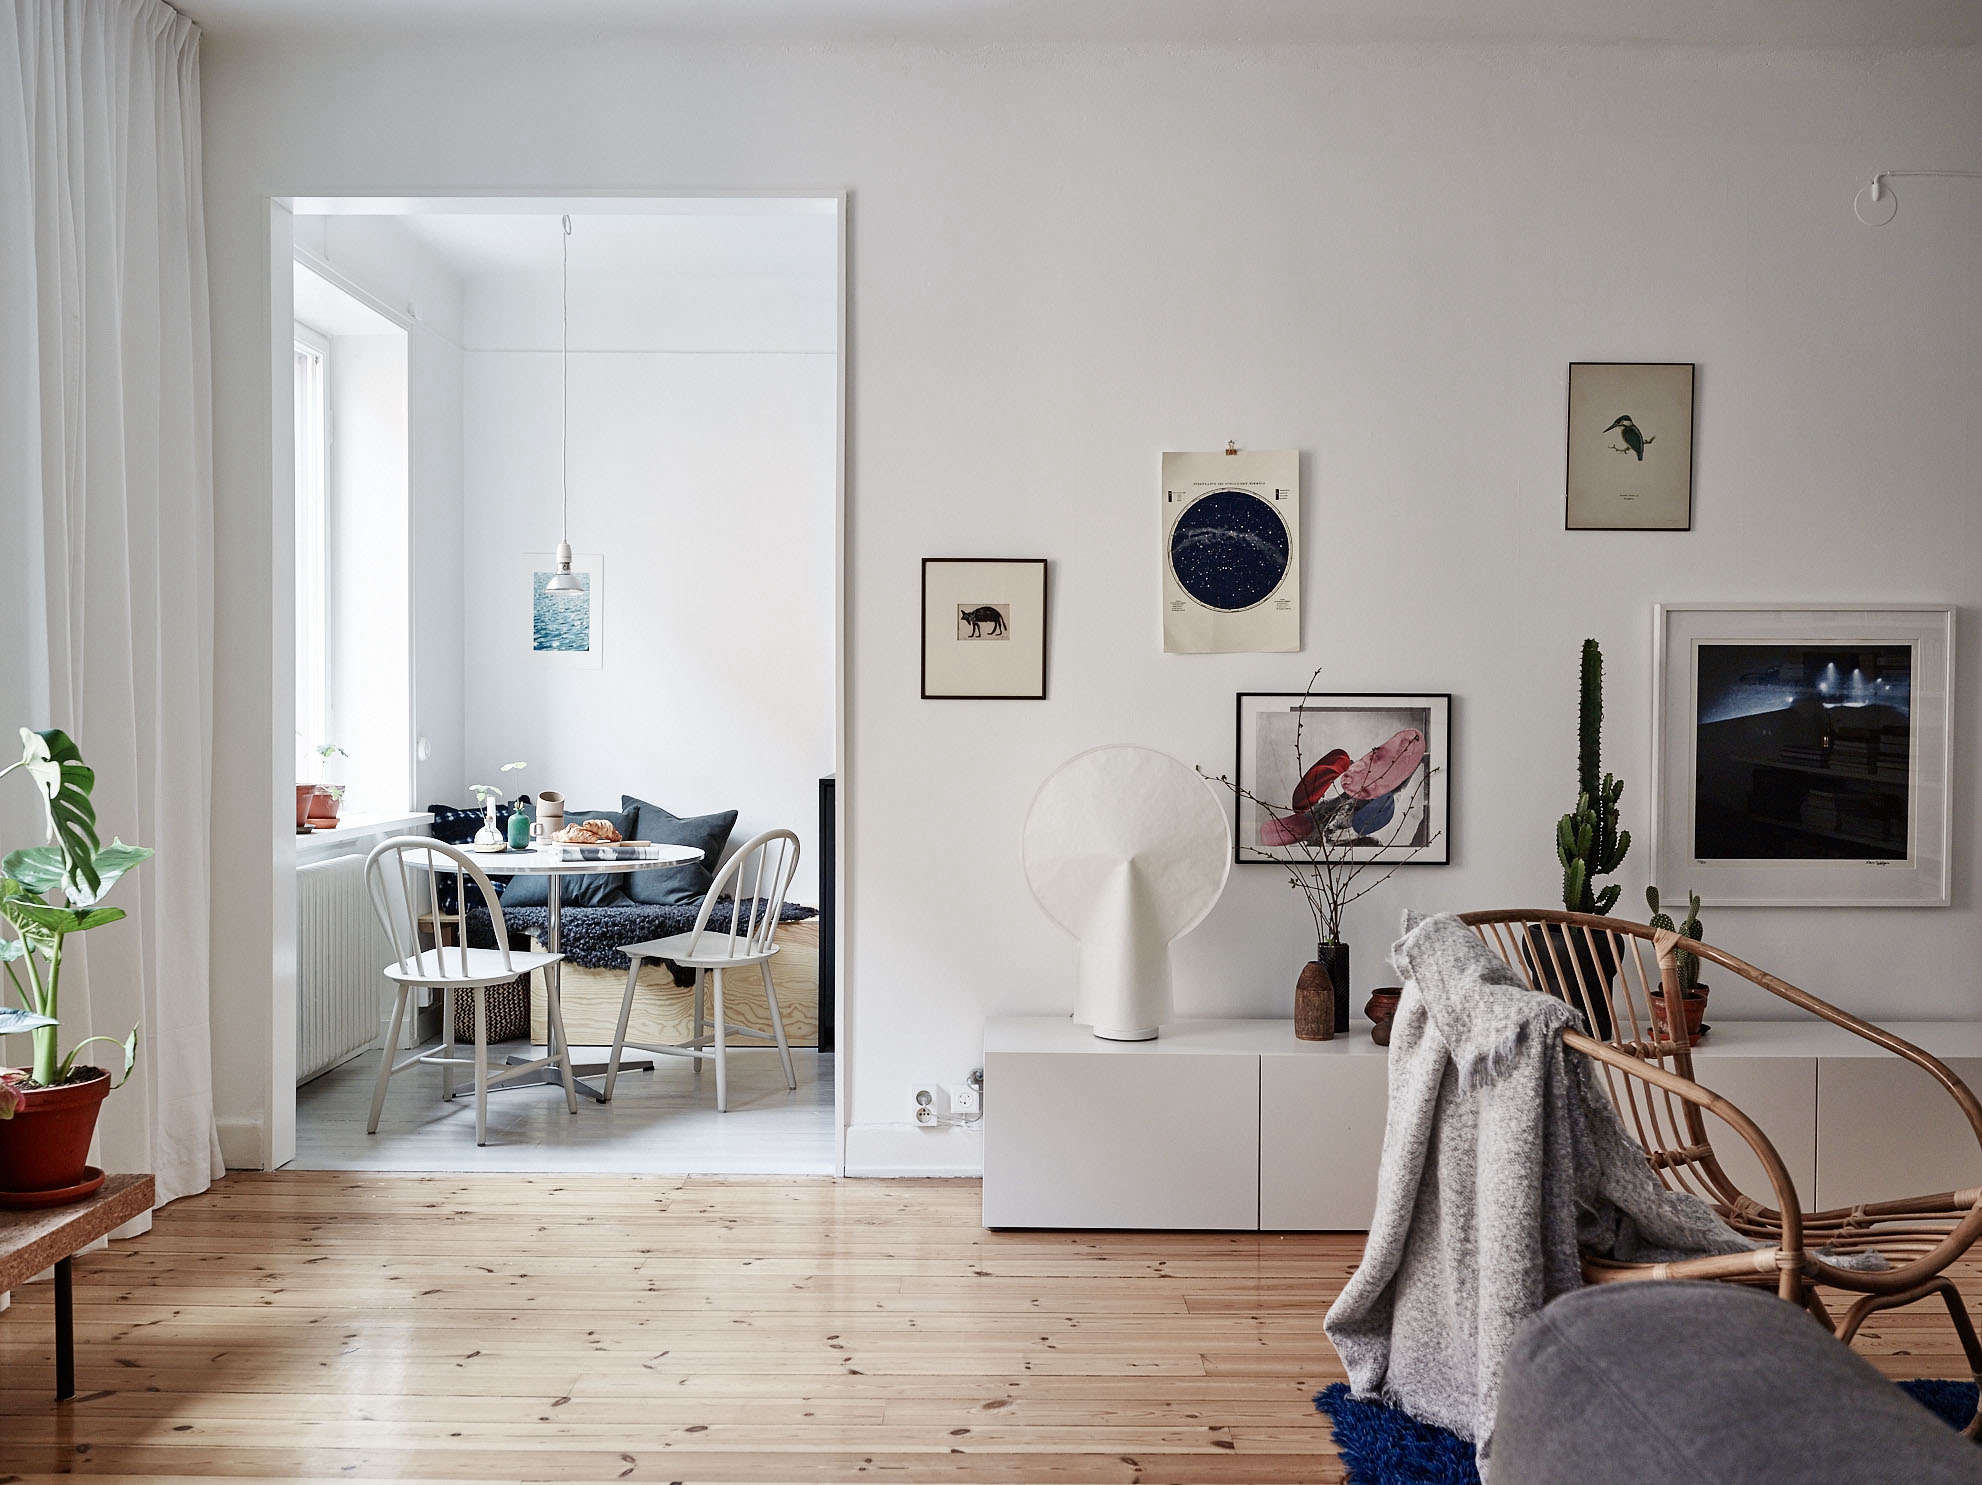 A Summery Flat In Stockholm With Affordable Small Space